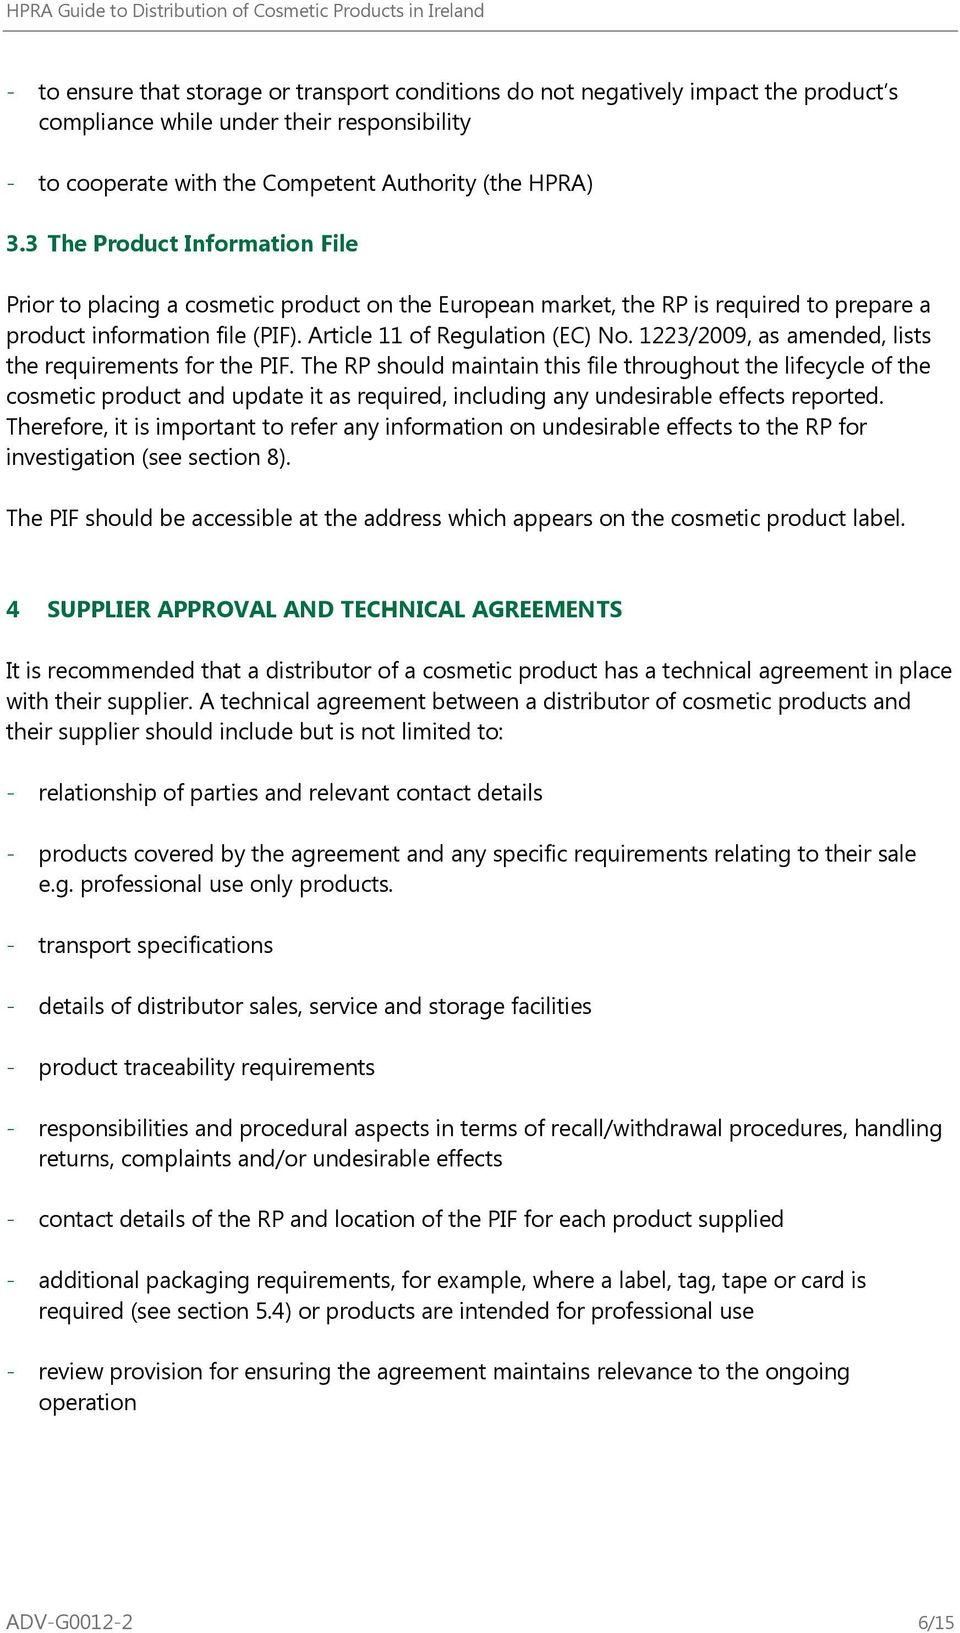 1223/2009, as amended, lists the requirements for the PIF.